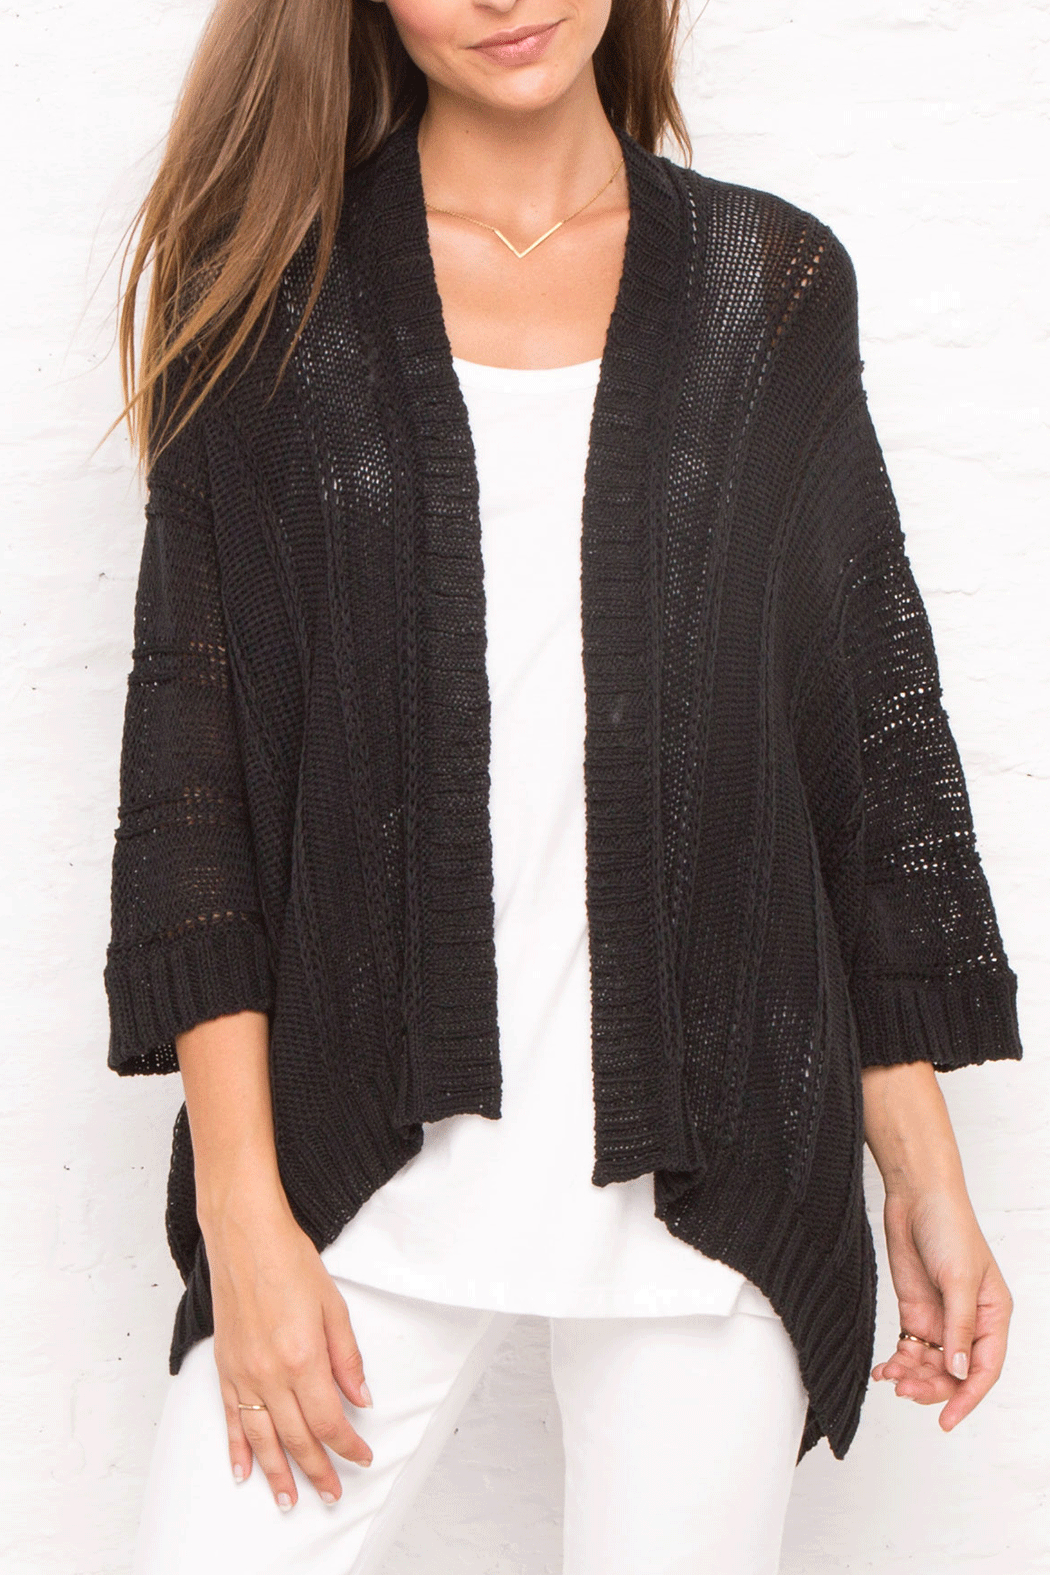 Wooden Ships Rib Kimono Cardigan from Iowa by Weathered Elements ...